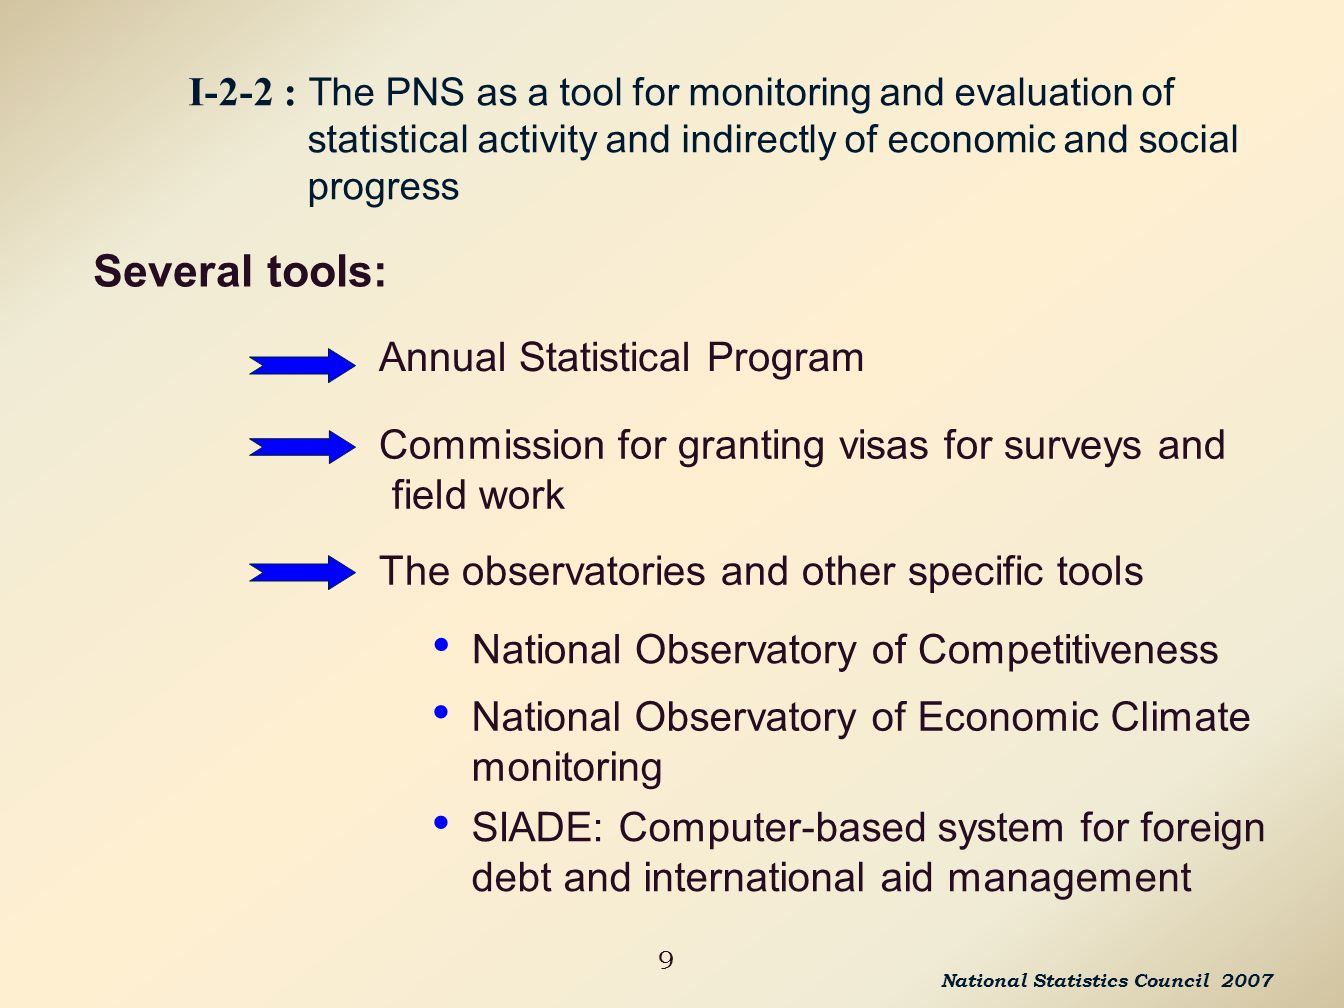 9 I-2-2 : The PNS as a tool for monitoring and evaluation of statistical activity and indirectly of economic and social progress Several tools: Annual Statistical Program Commission for granting visas for surveys and field work The observatories and other specific tools National Observatory of Competitiveness National Observatory of Economic Climate monitoring SIADE: Computer-based system for foreign debt and international aid management National Statistics Council 2007